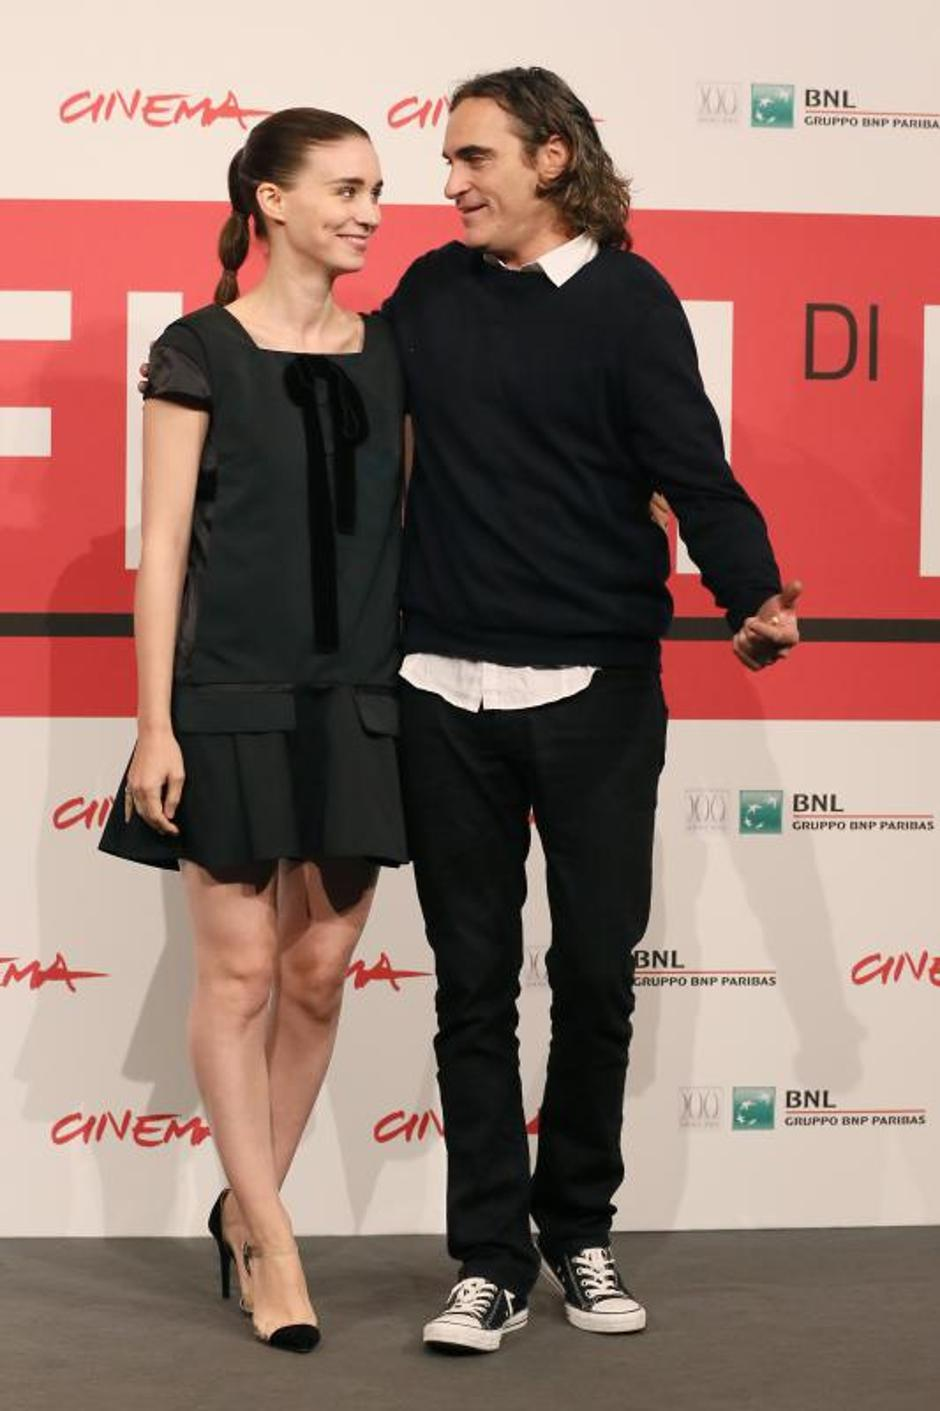 8th Rome Film Festival - 'Her' Photocall | Autor: Alessia Paradisi/Press Association/PIXSELL